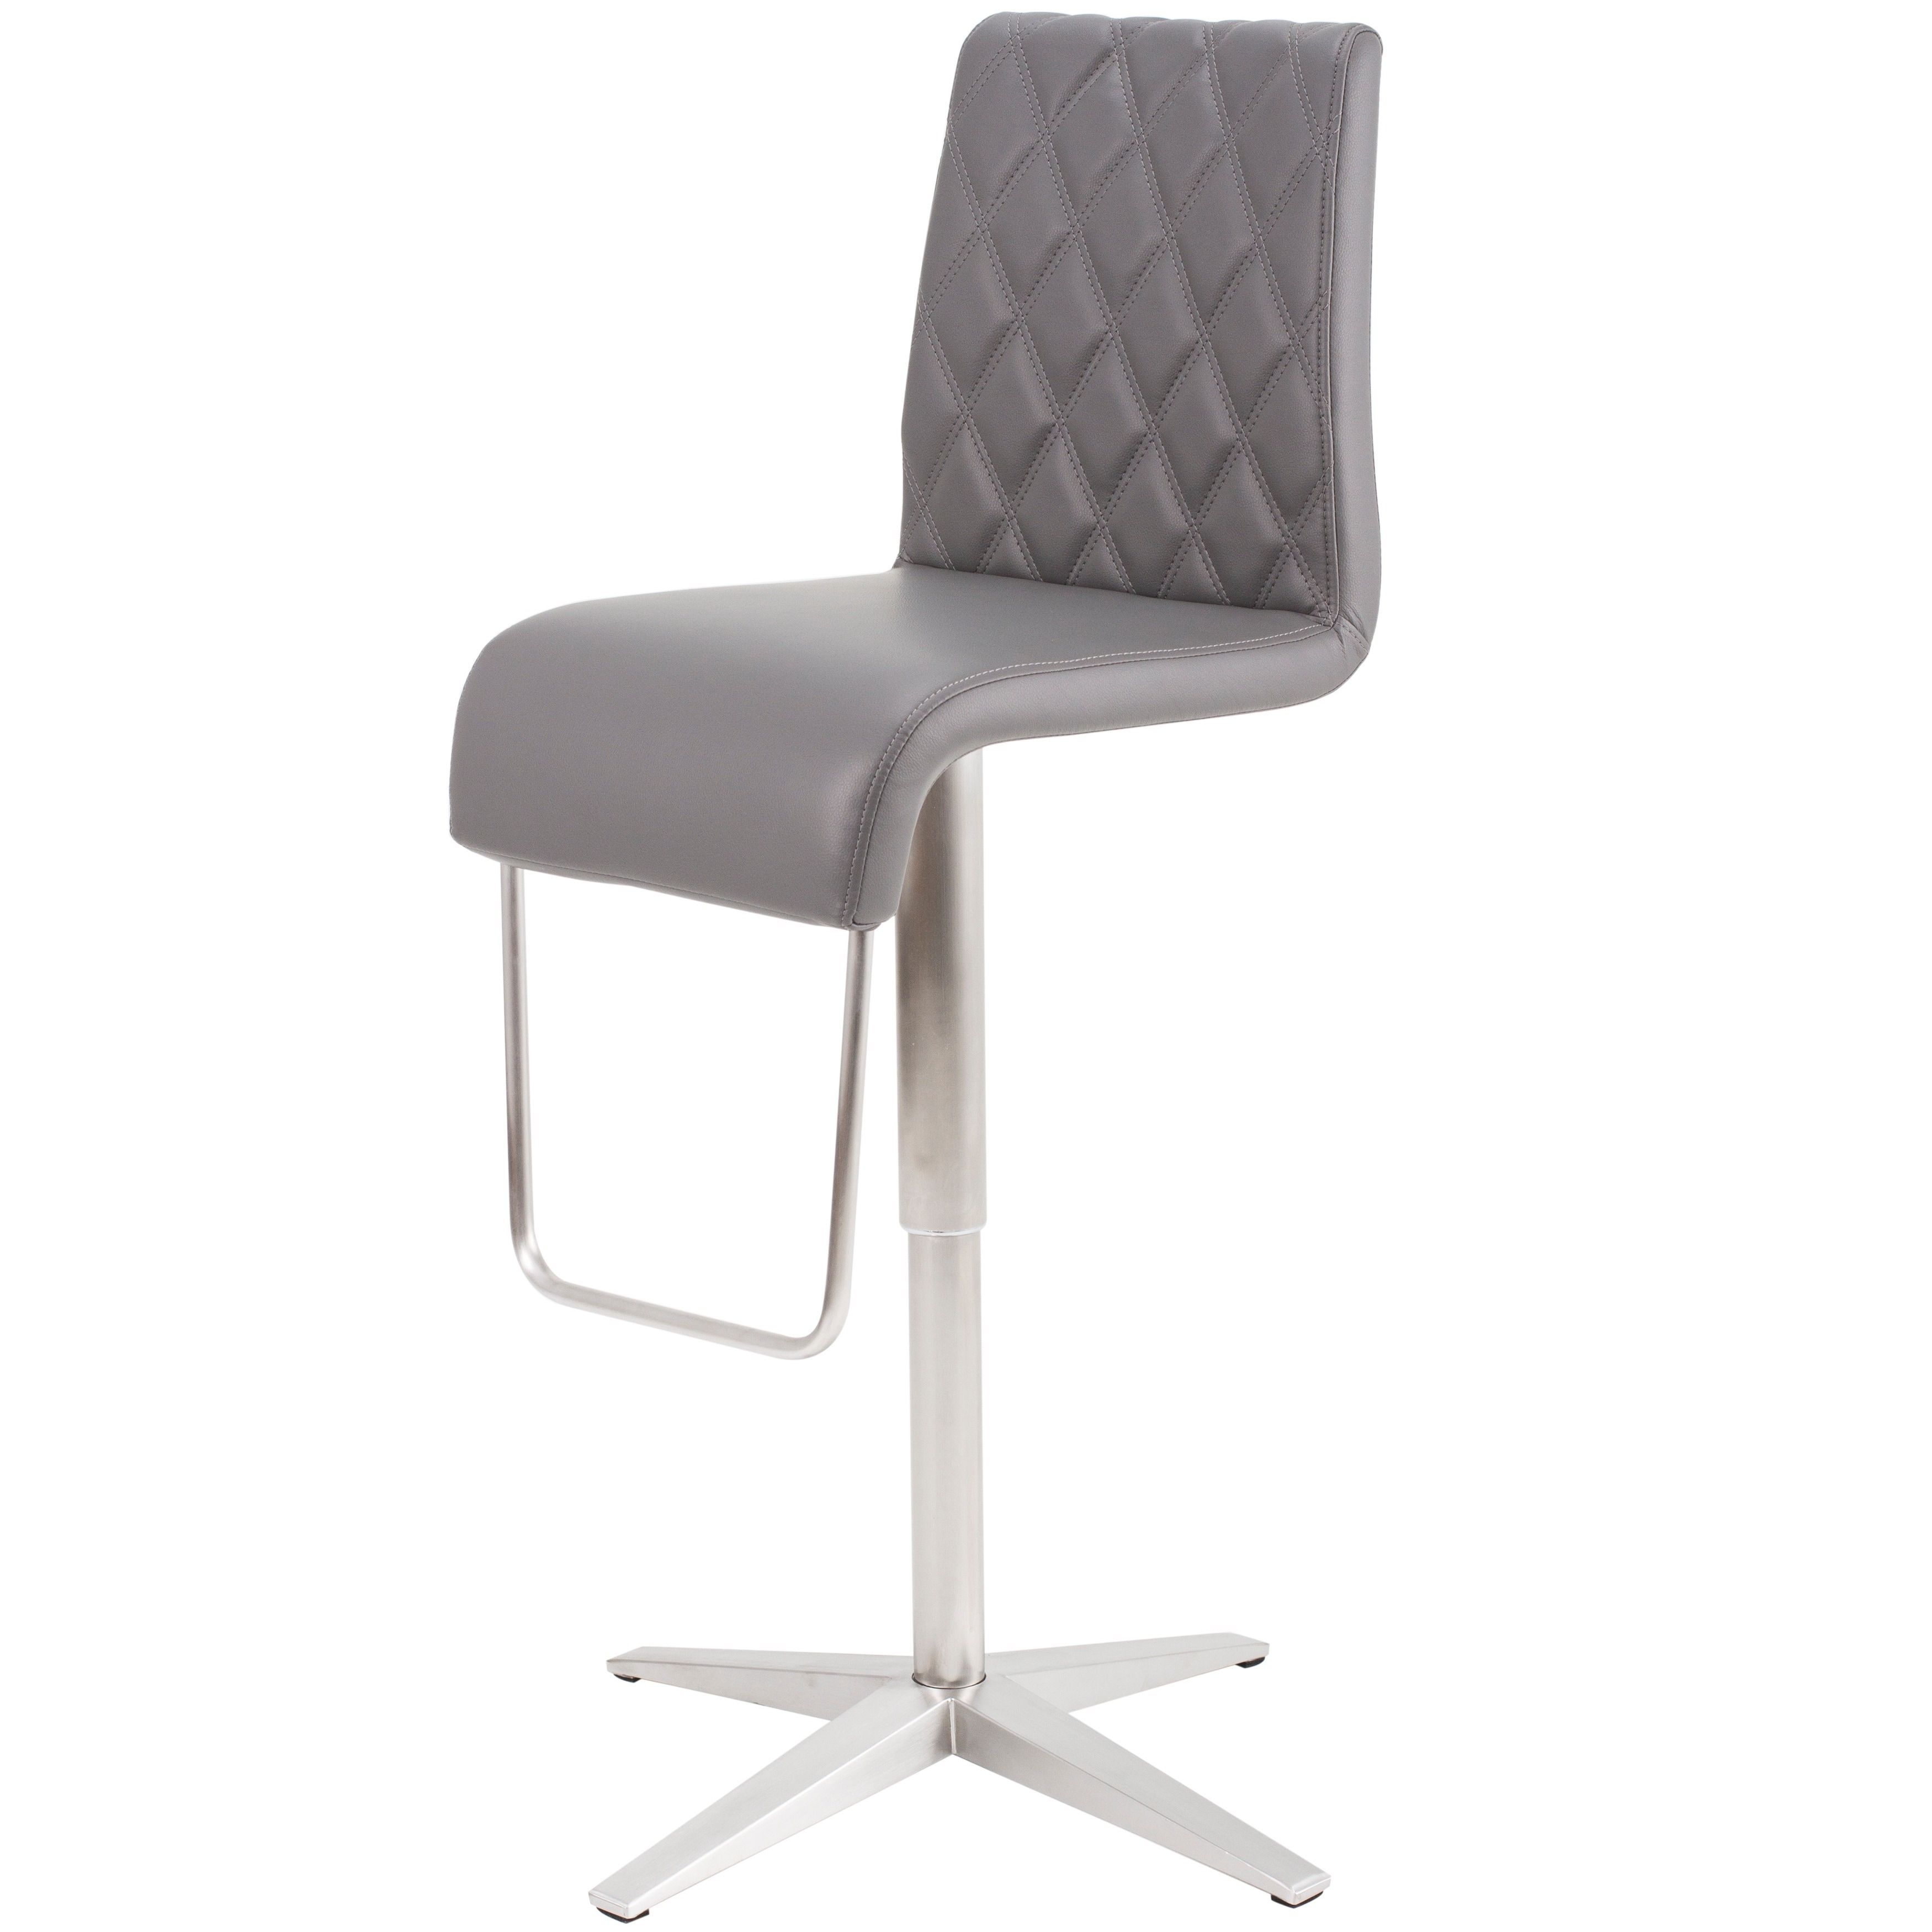 Marvelous Mix Brushed Stainless Steel Silver Diamond Pattern High Machost Co Dining Chair Design Ideas Machostcouk